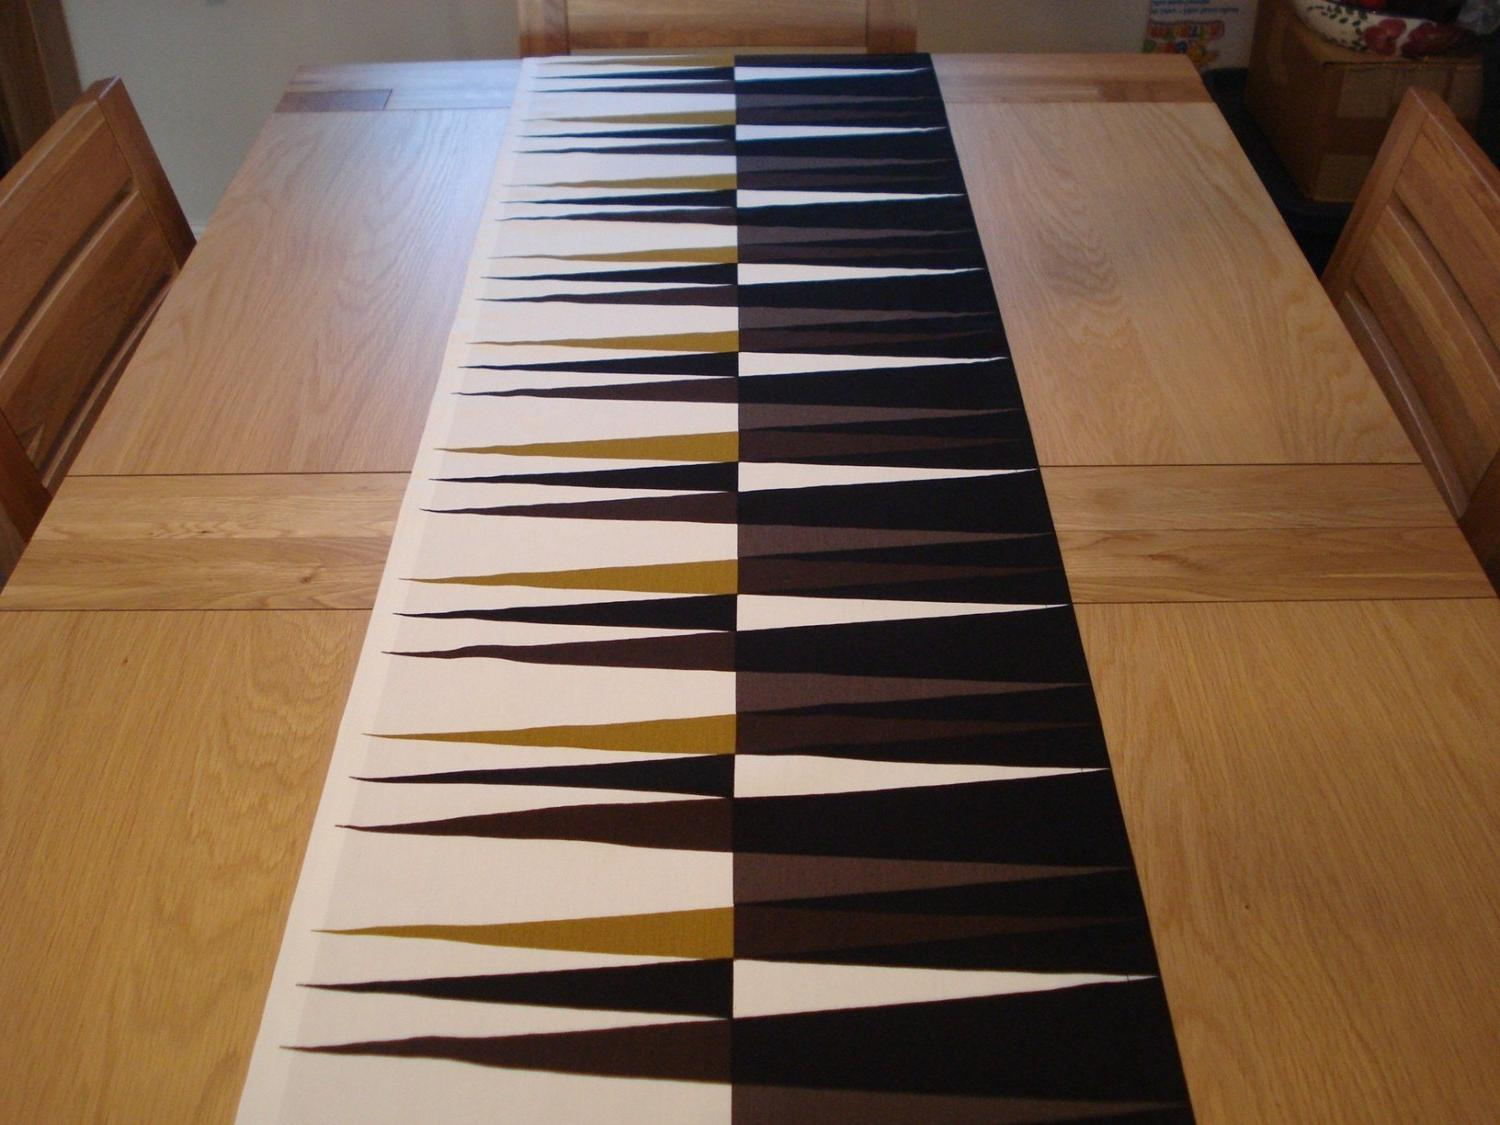 Table runner brown and black pattern Backgammon 17.5 inch wide length up to